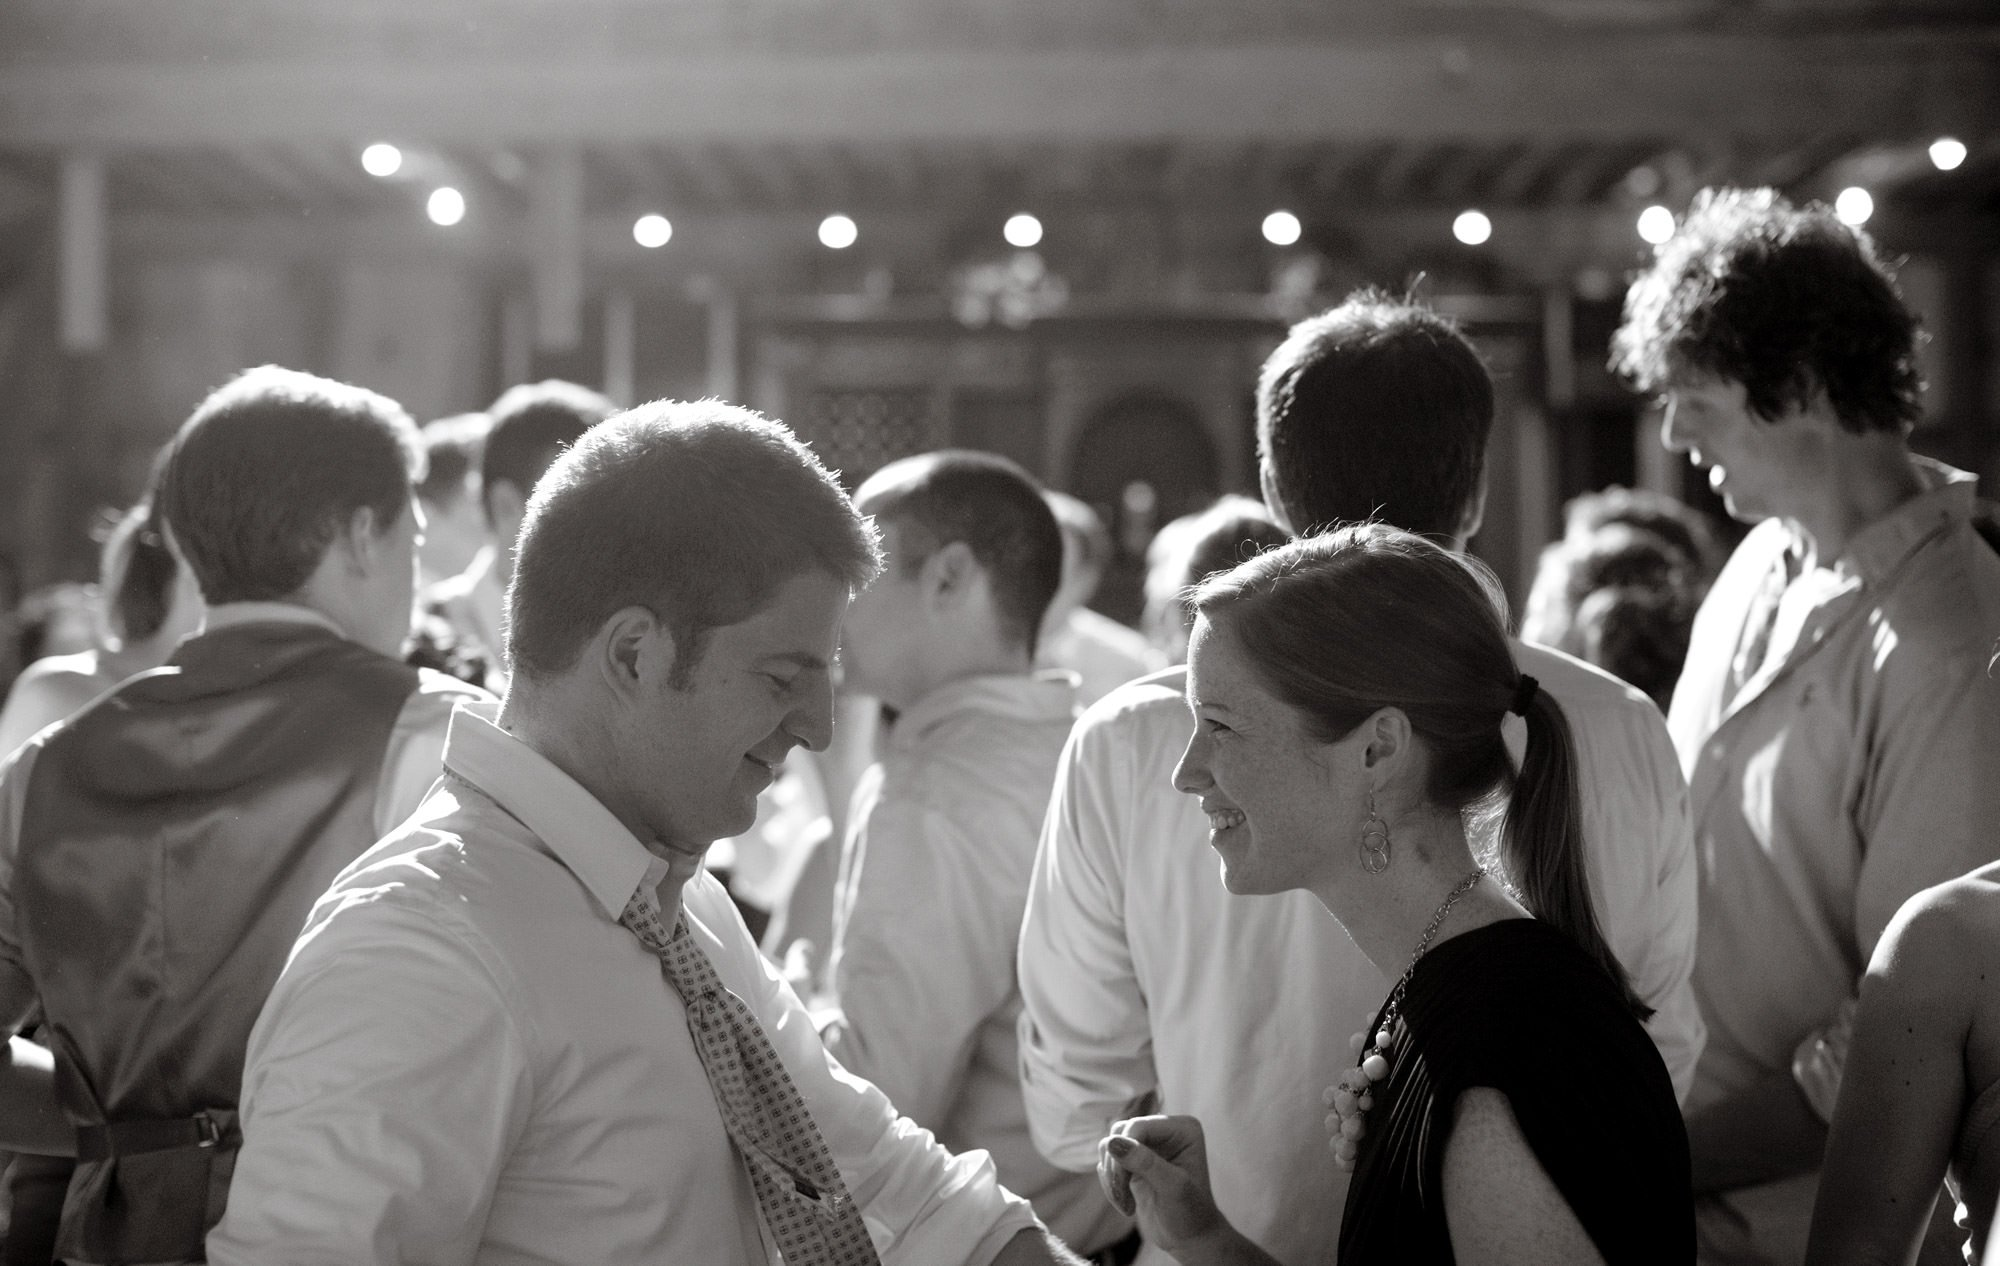 Guests dance during the reception of this Sunset Hills Vineyard wedding.